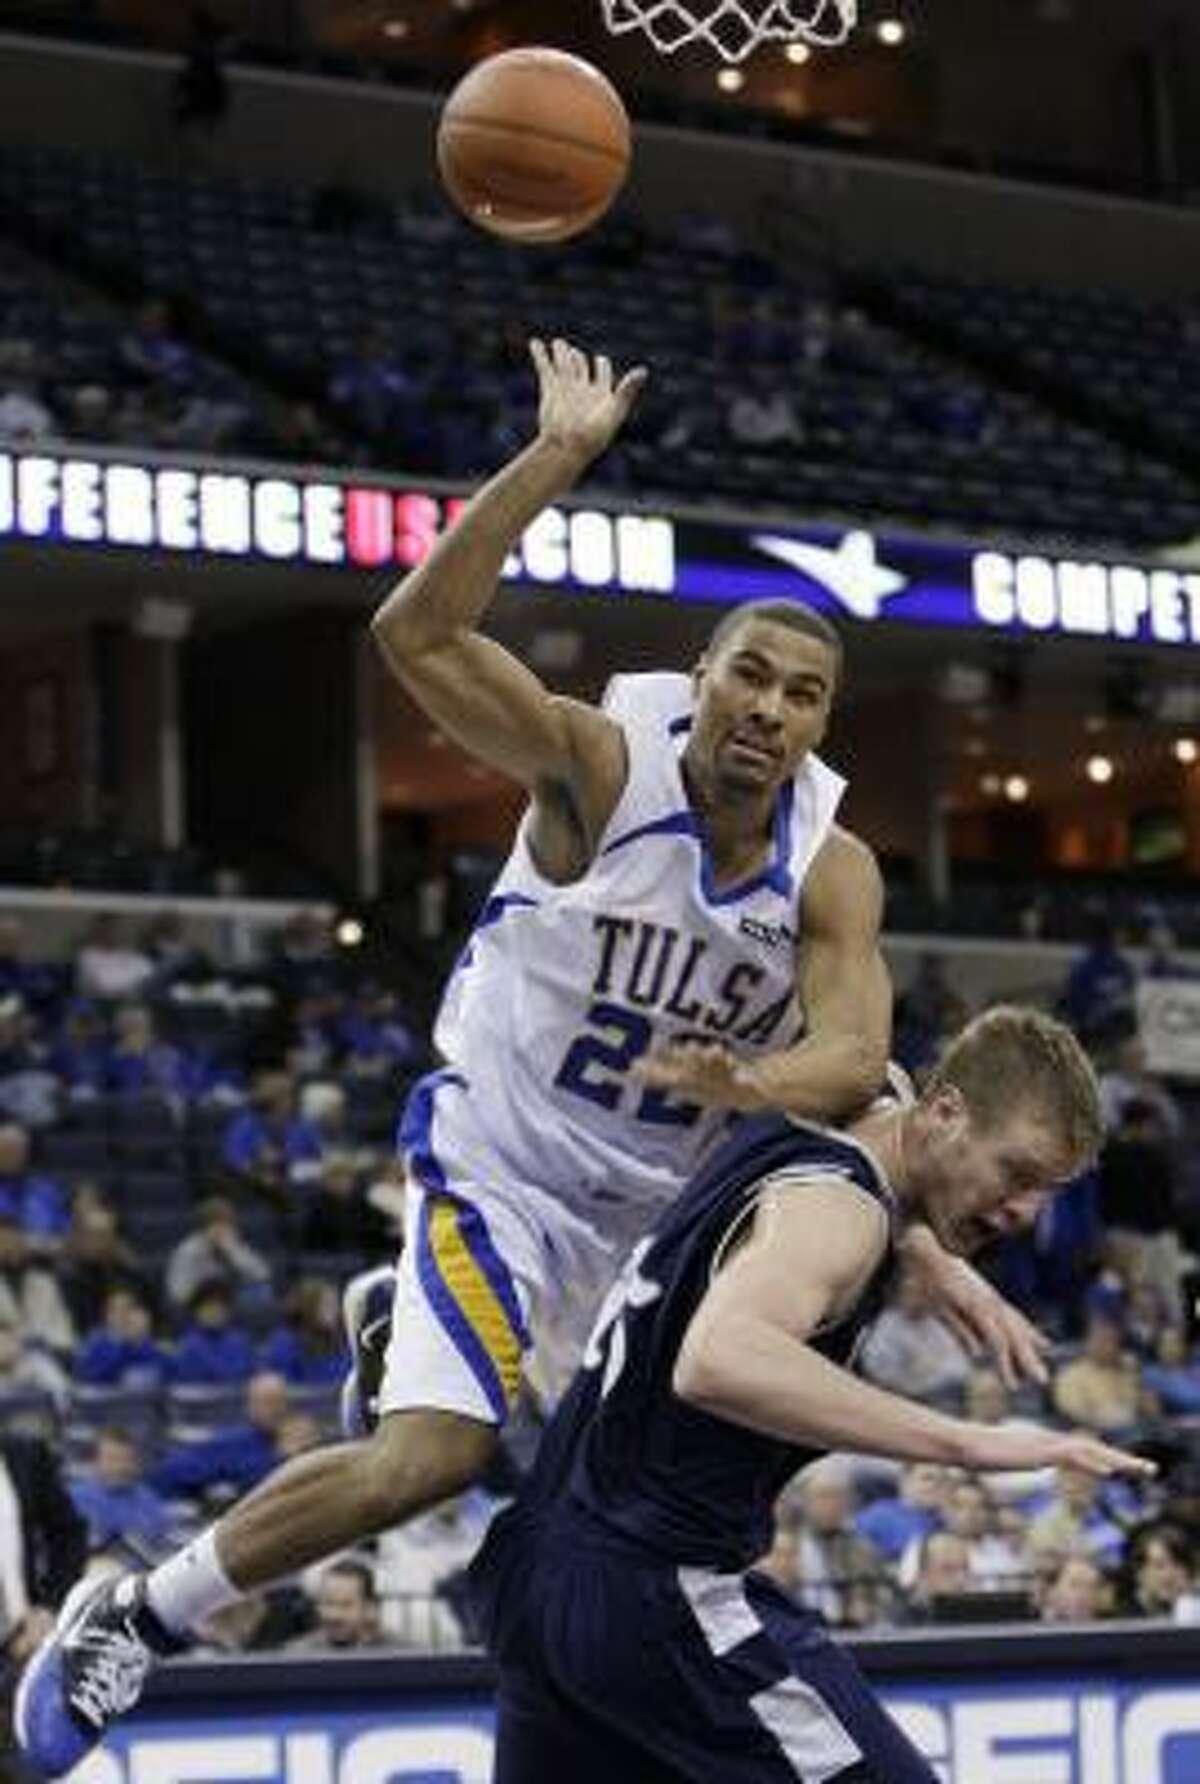 It was that kind of day for the Owls as Tulsa guard Glenn Andrews collides with center Trey Stanton in Thursday's Conference USA second round contest.